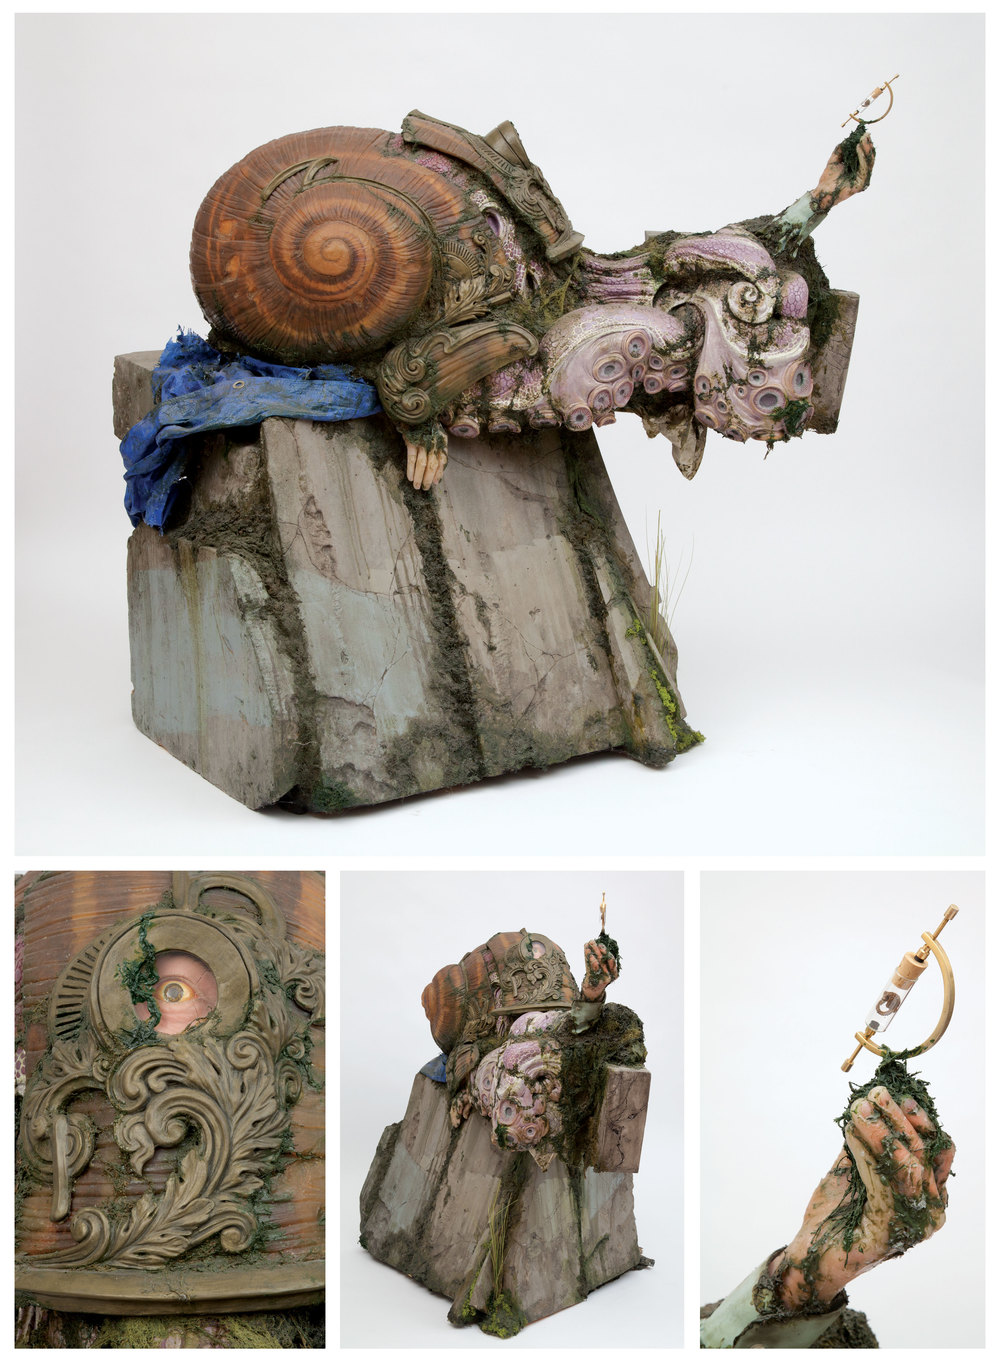 Christopher Brand.  The Vessel . 2010 - carving foam, fiberglass, urethane plastic, silicone, acrylic & polymer clay, 3.5' x 3.5'